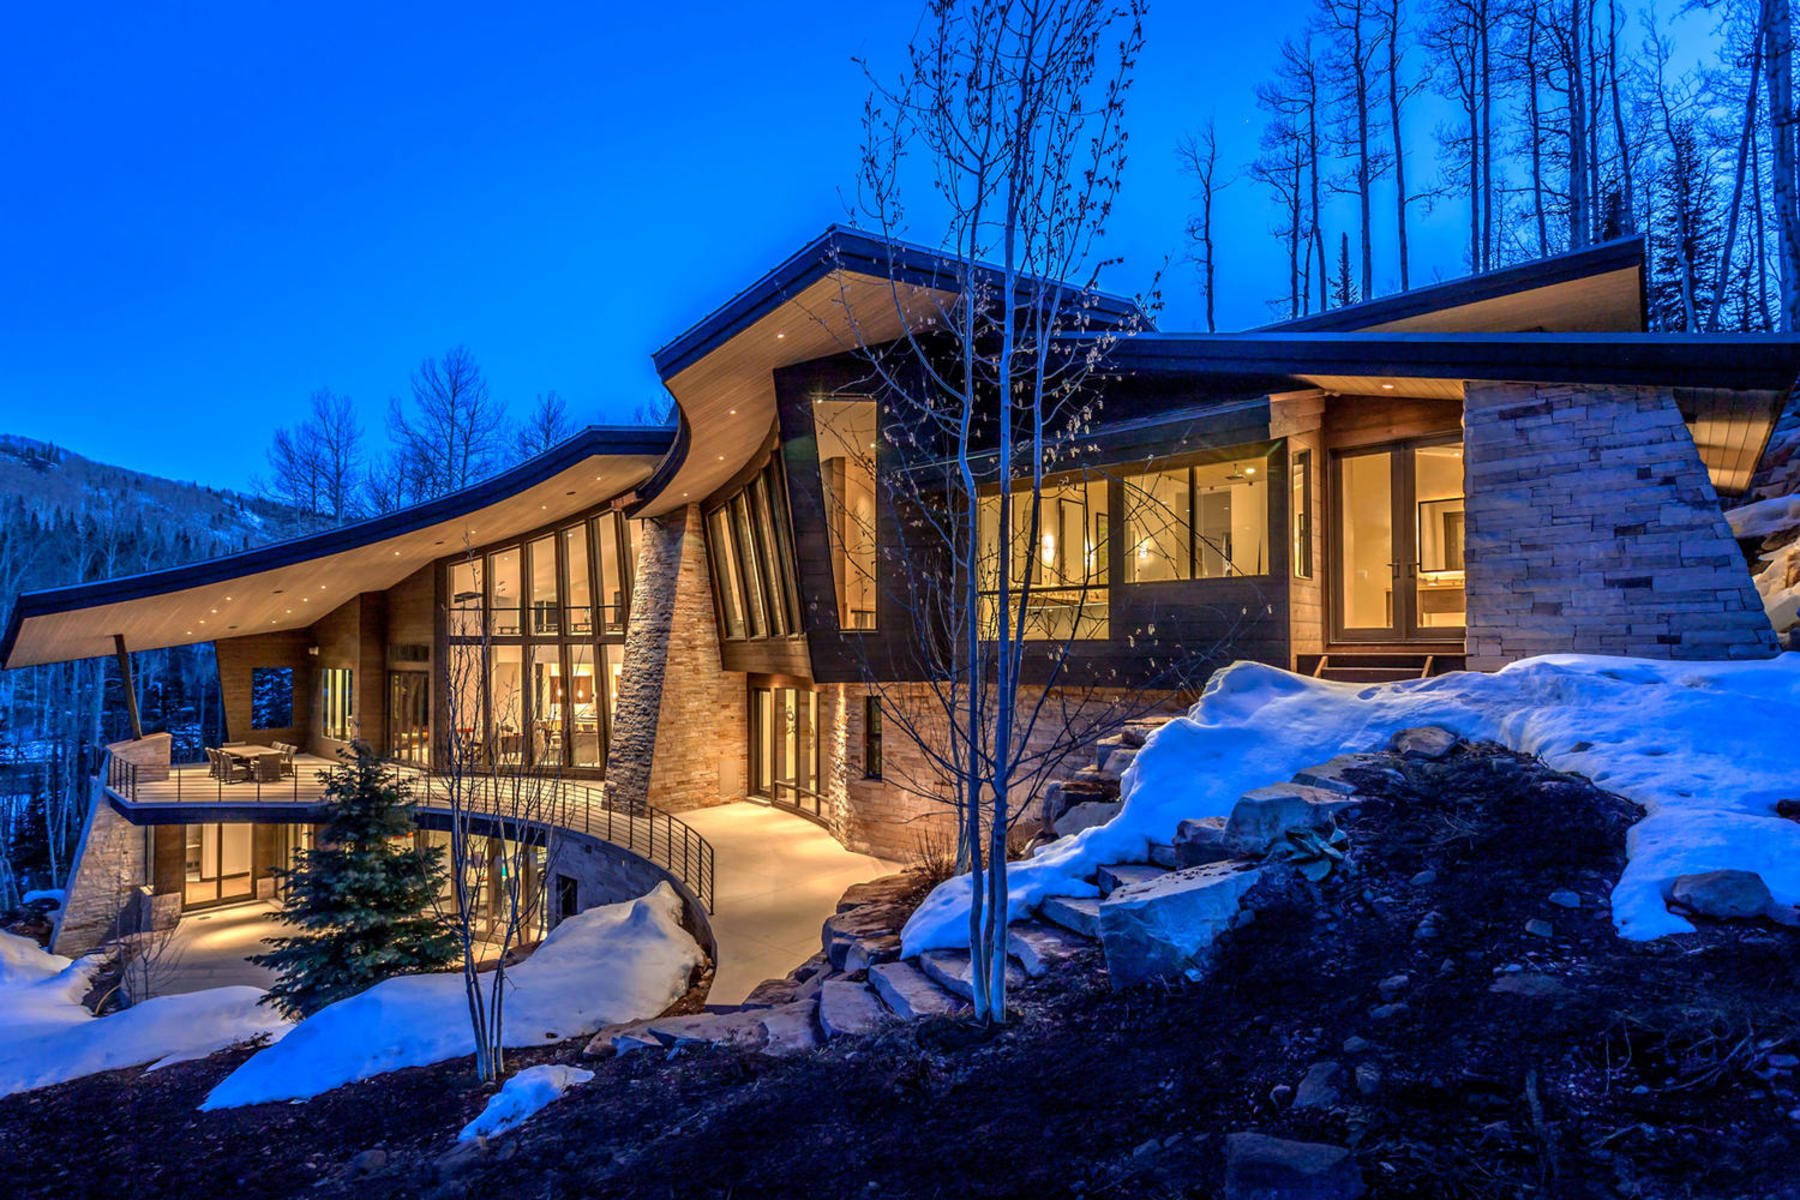 Single Family Home for Sale at Stunning Mountain Modern Ski Escape 184 White Pine Canyon Rd Park City, Utah 84060 United States